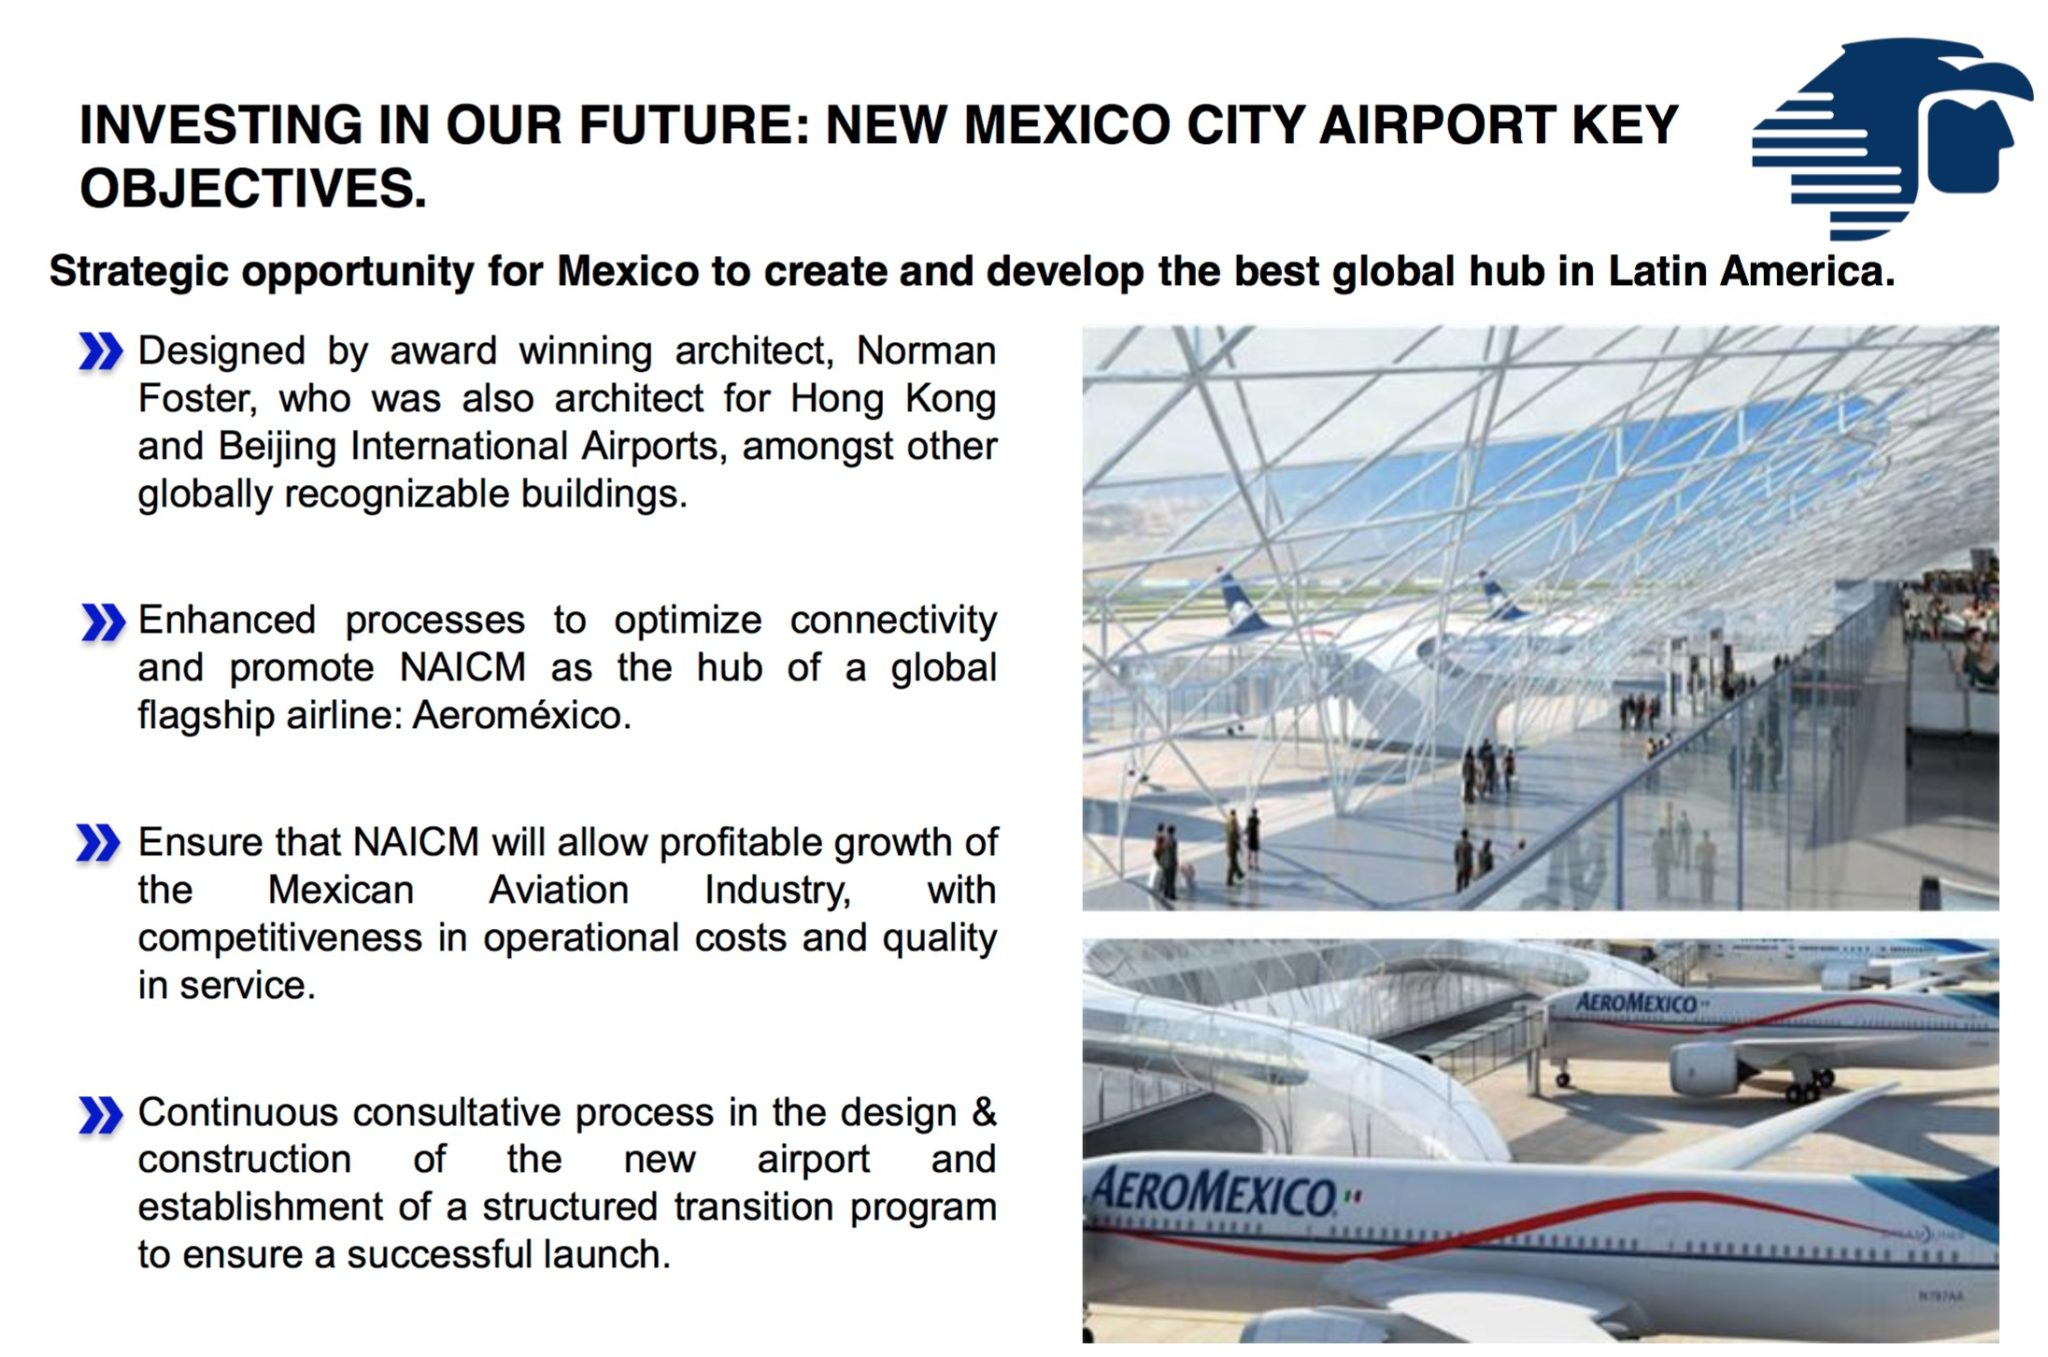 With a new airport and a new fleet, Aeromexico has real opportunities to grow as a connecting carrier. Image: Aeromexico